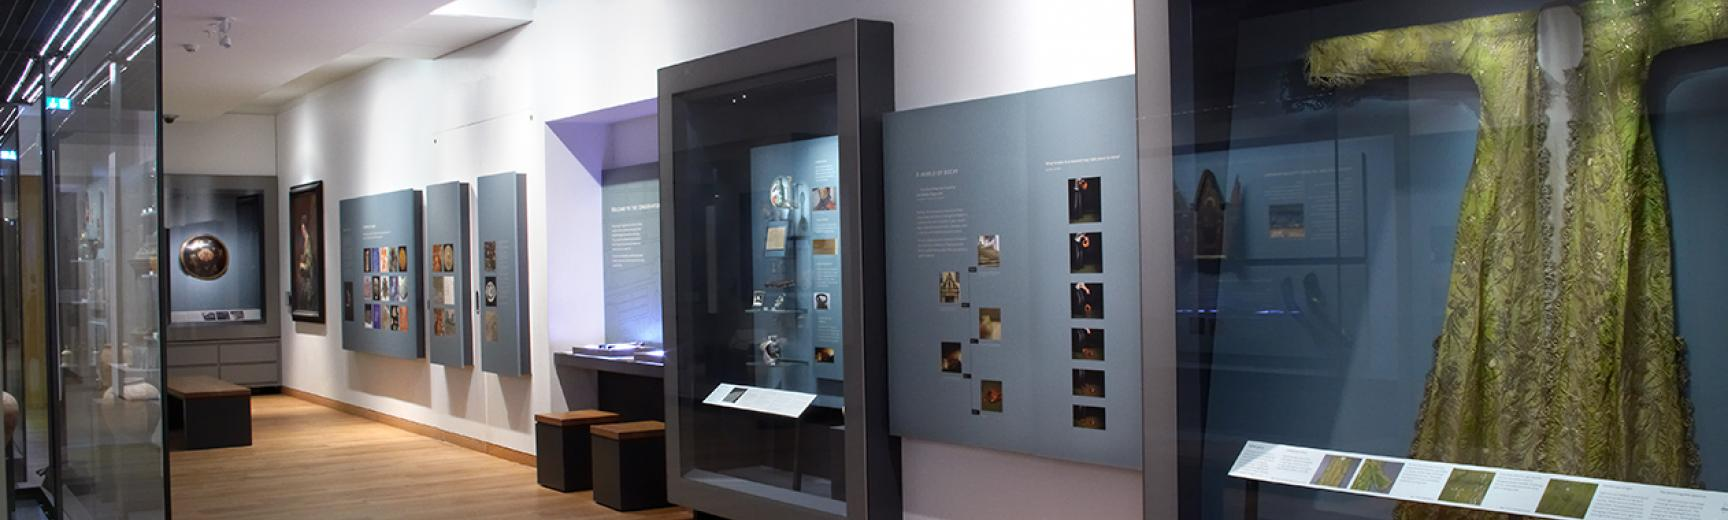 Gallery 4, Conserving the Past